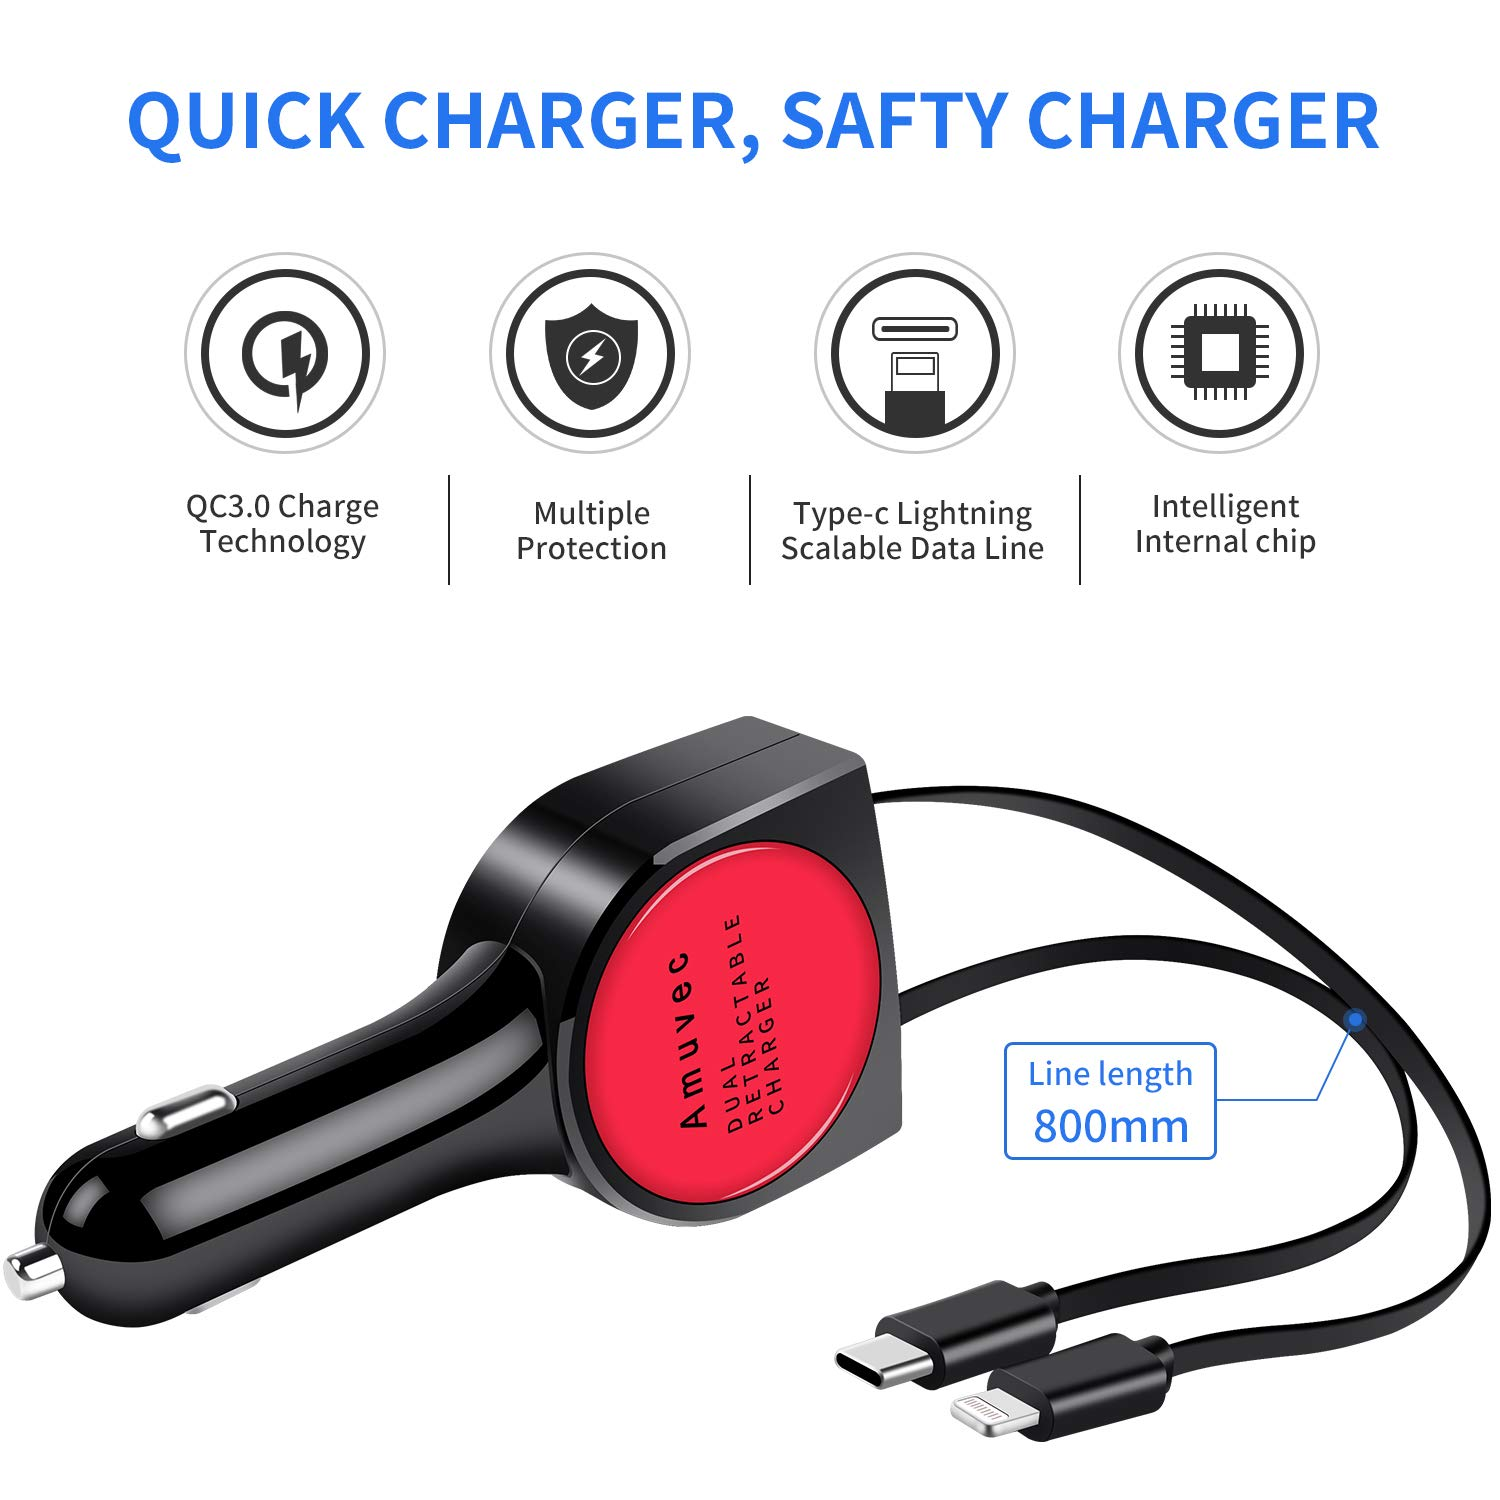 red and Phone Charging Cable QC3.0 6A//40W Fast Charging with 2.6ft Dual Retractable Type C Amuvec Car Charger and 2USB Ports.Compatible with Samsung Galaxy S9 S8 Google Pixel 2XL Nexus10 HTC and More